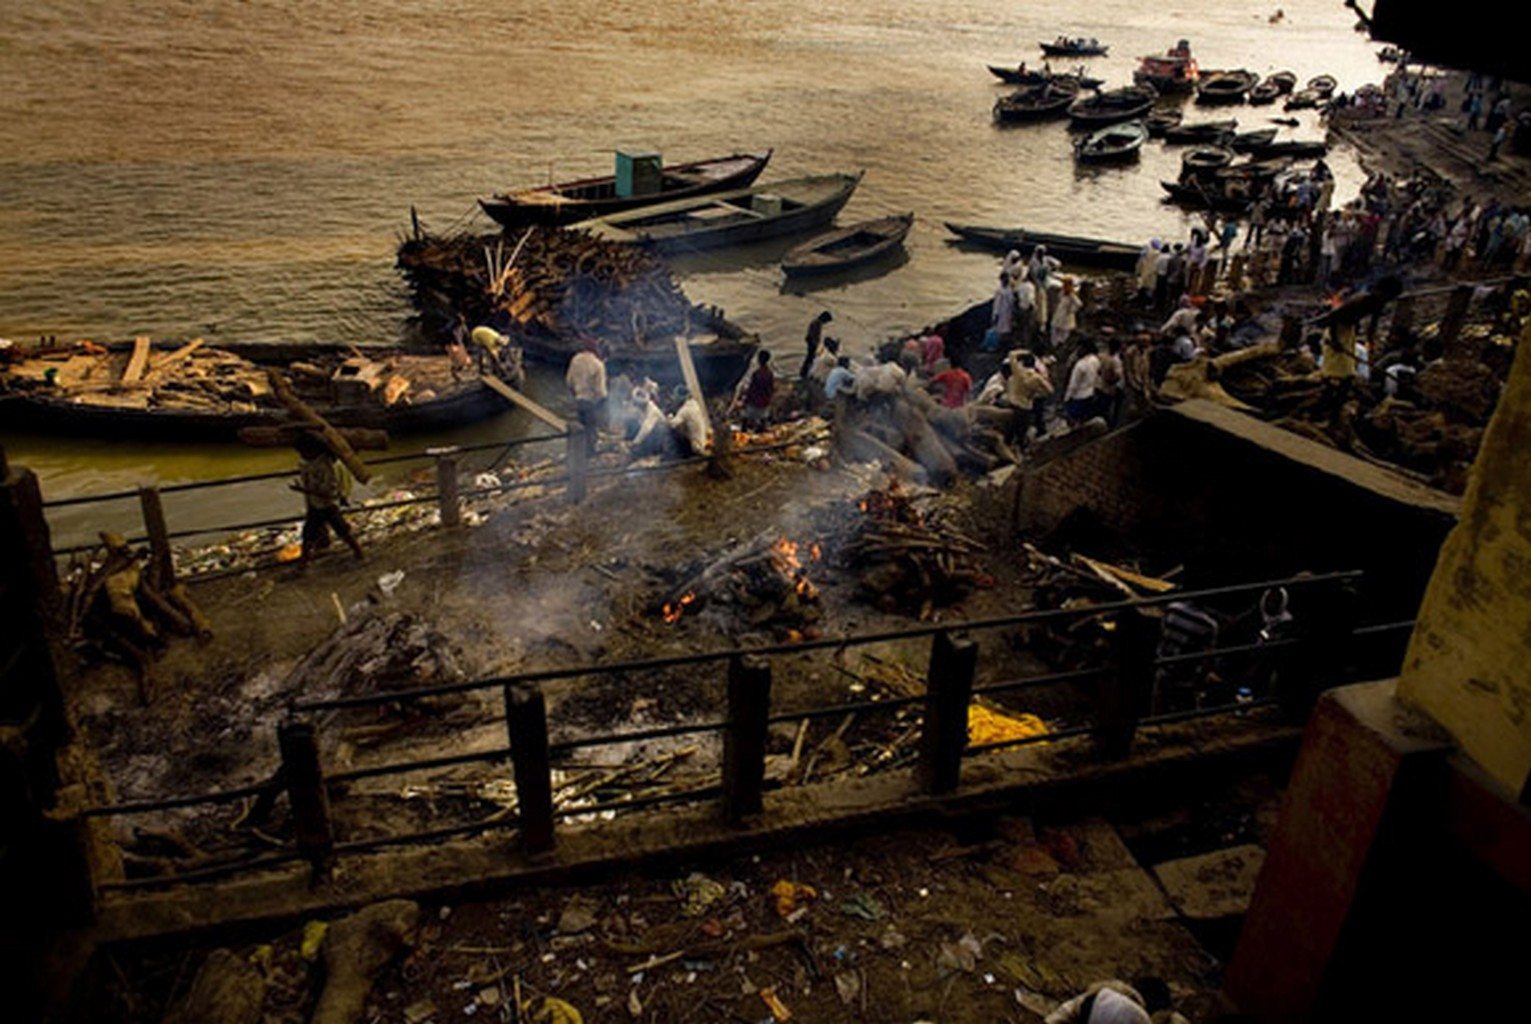 Rich-Joseph Facun - Cremation at the Manikarnika Ghat, Varanasi